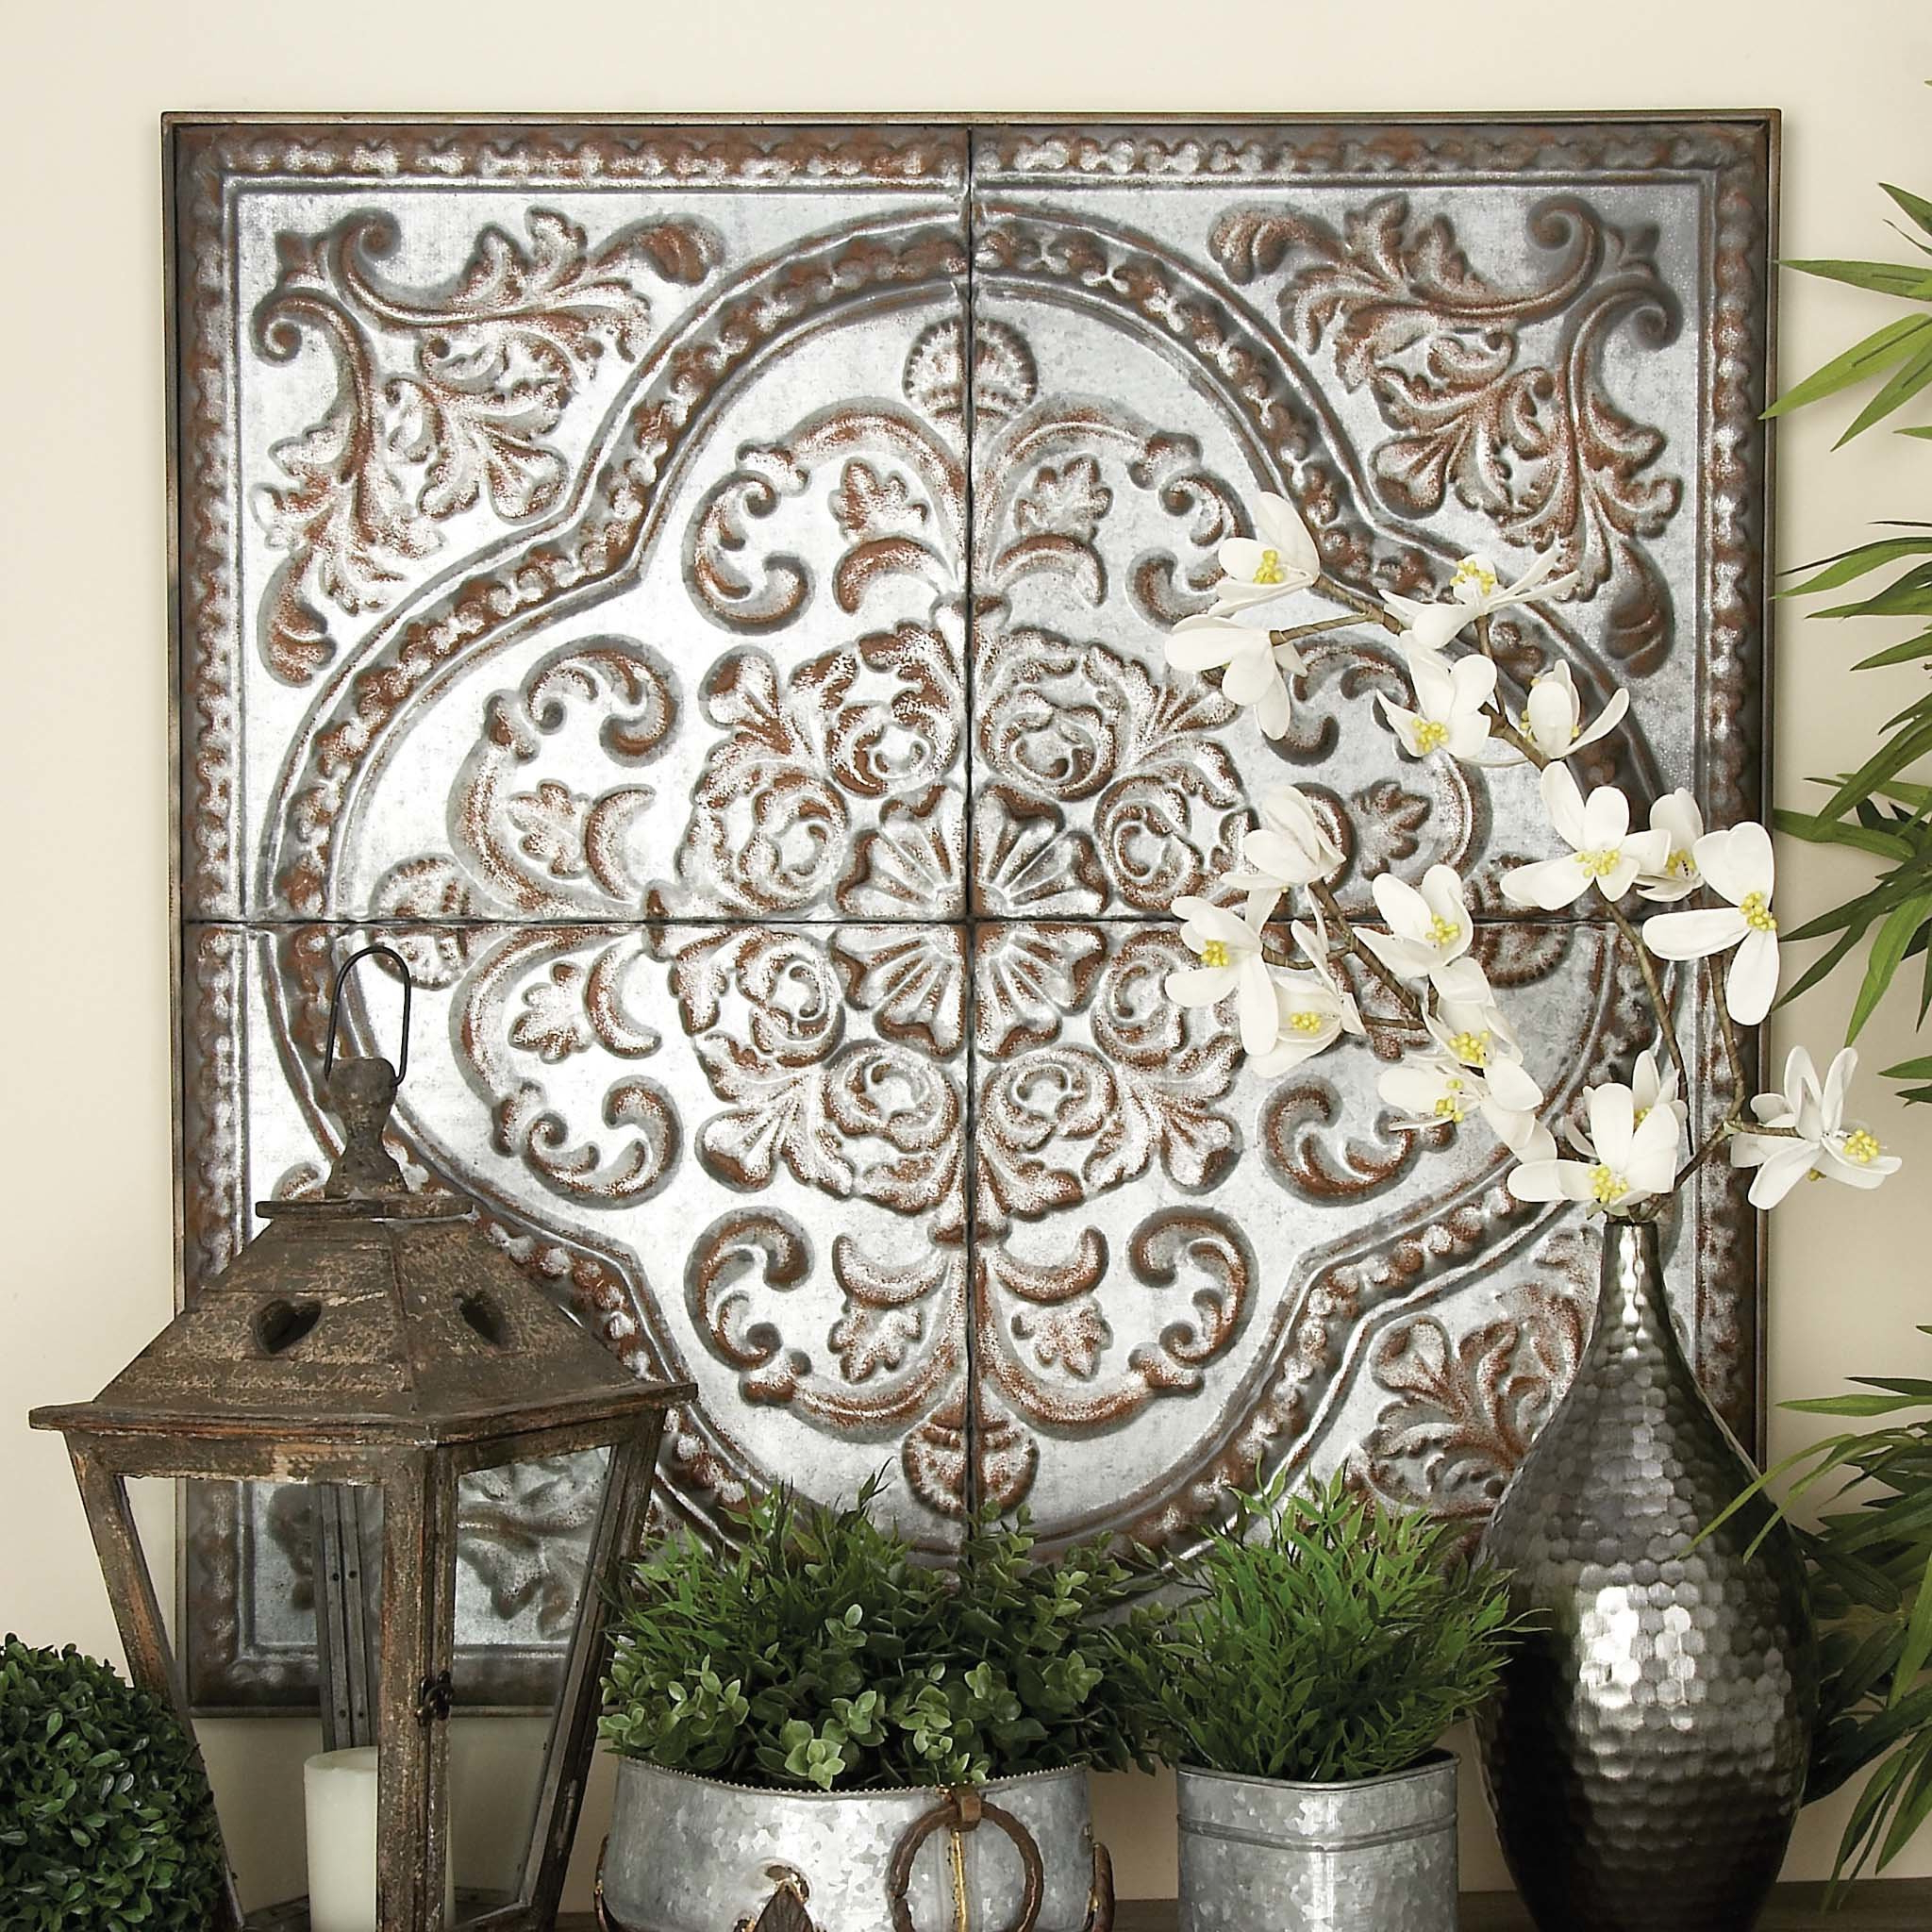 Wayfair With Regard To 2 Piece Metal Wall Decor Sets By Fleur De Lis Living (Gallery 5 of 20)